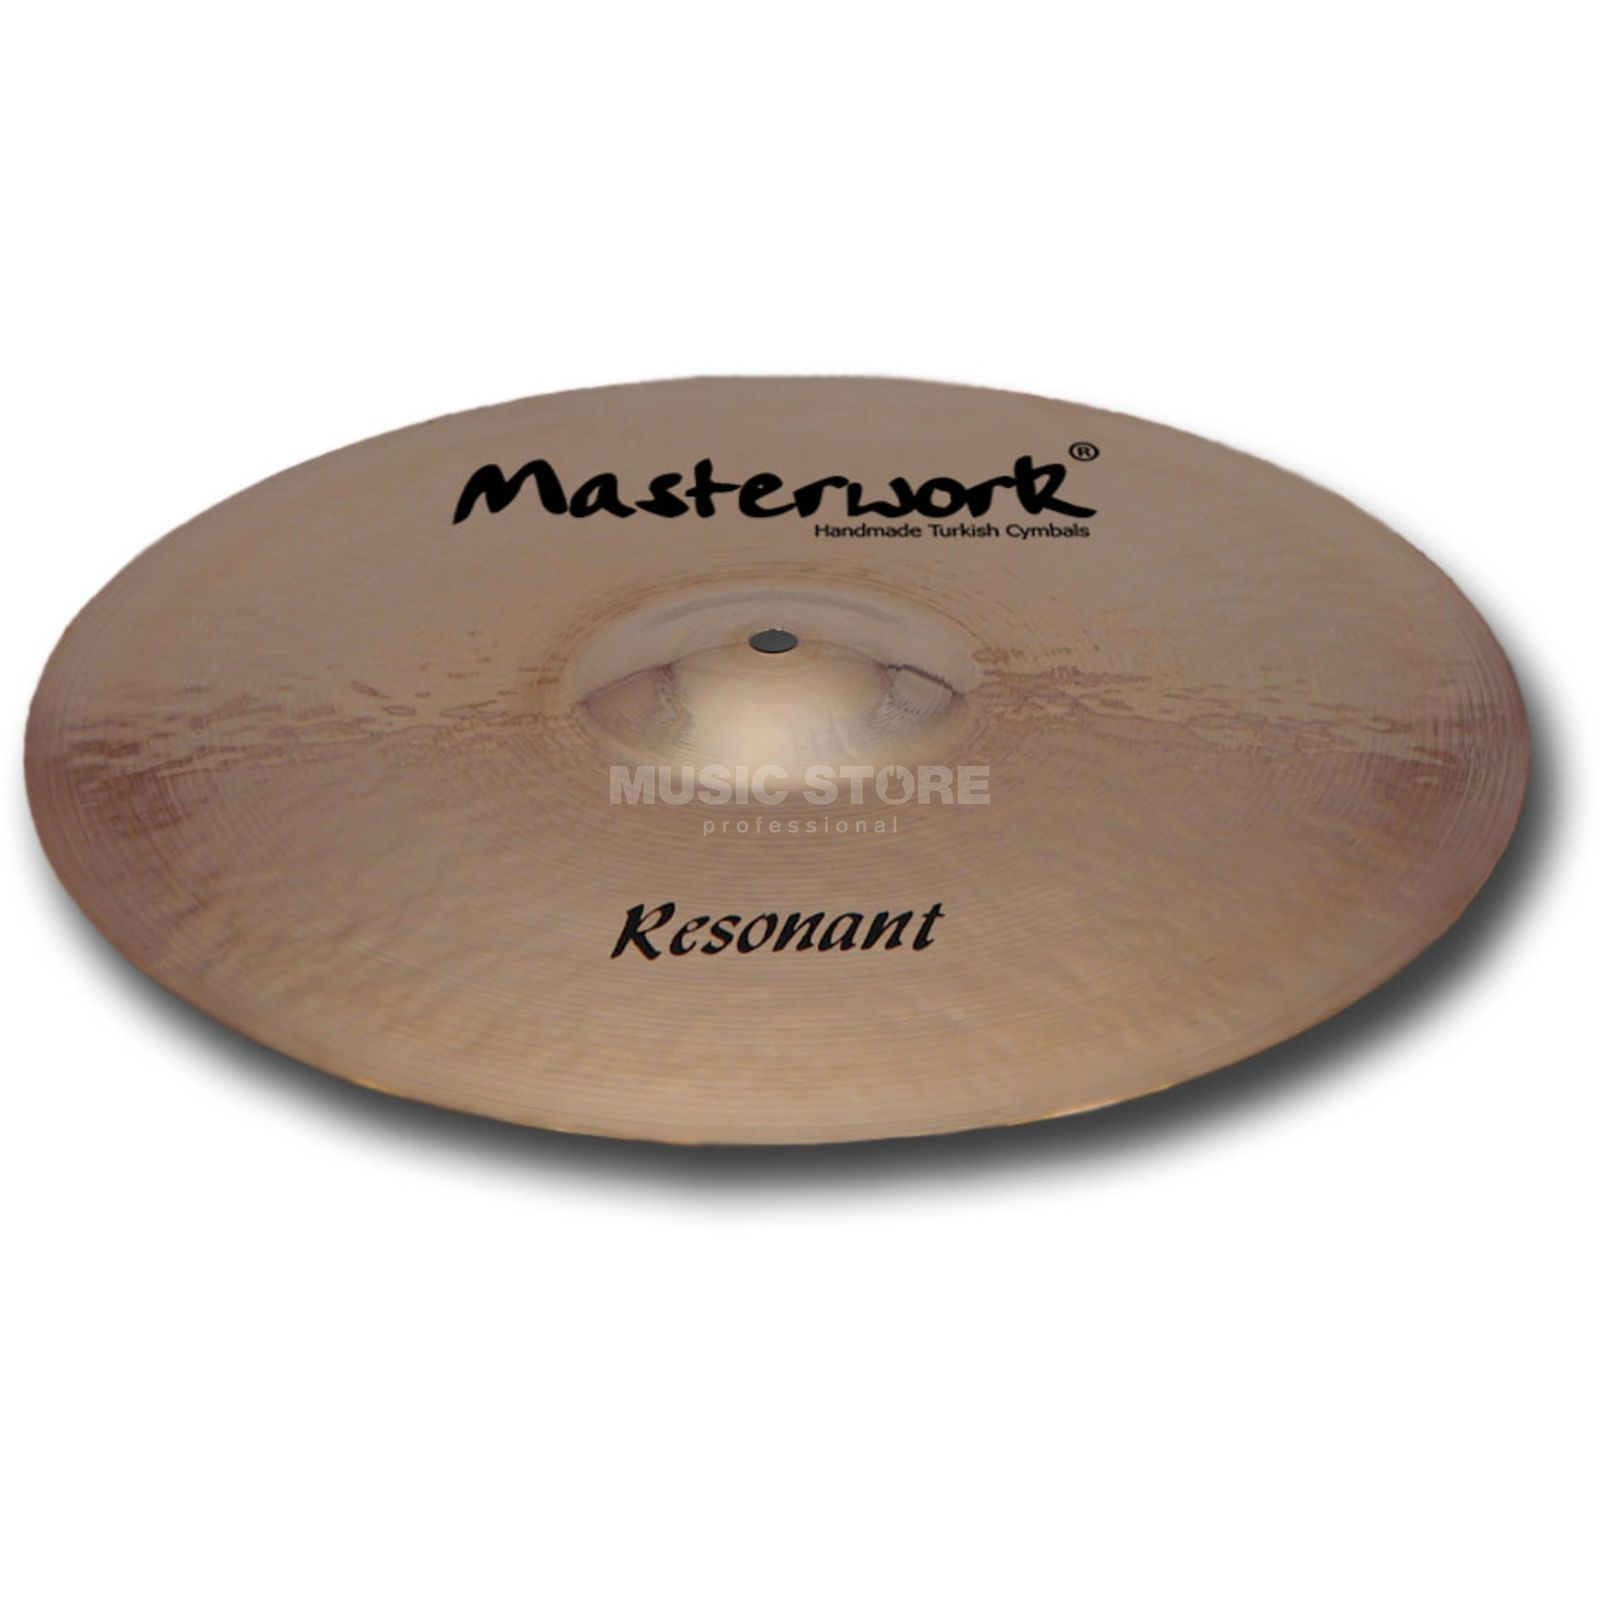 "Masterwork Resonant Crash 16"", Brilliant Finish Imagem do produto"